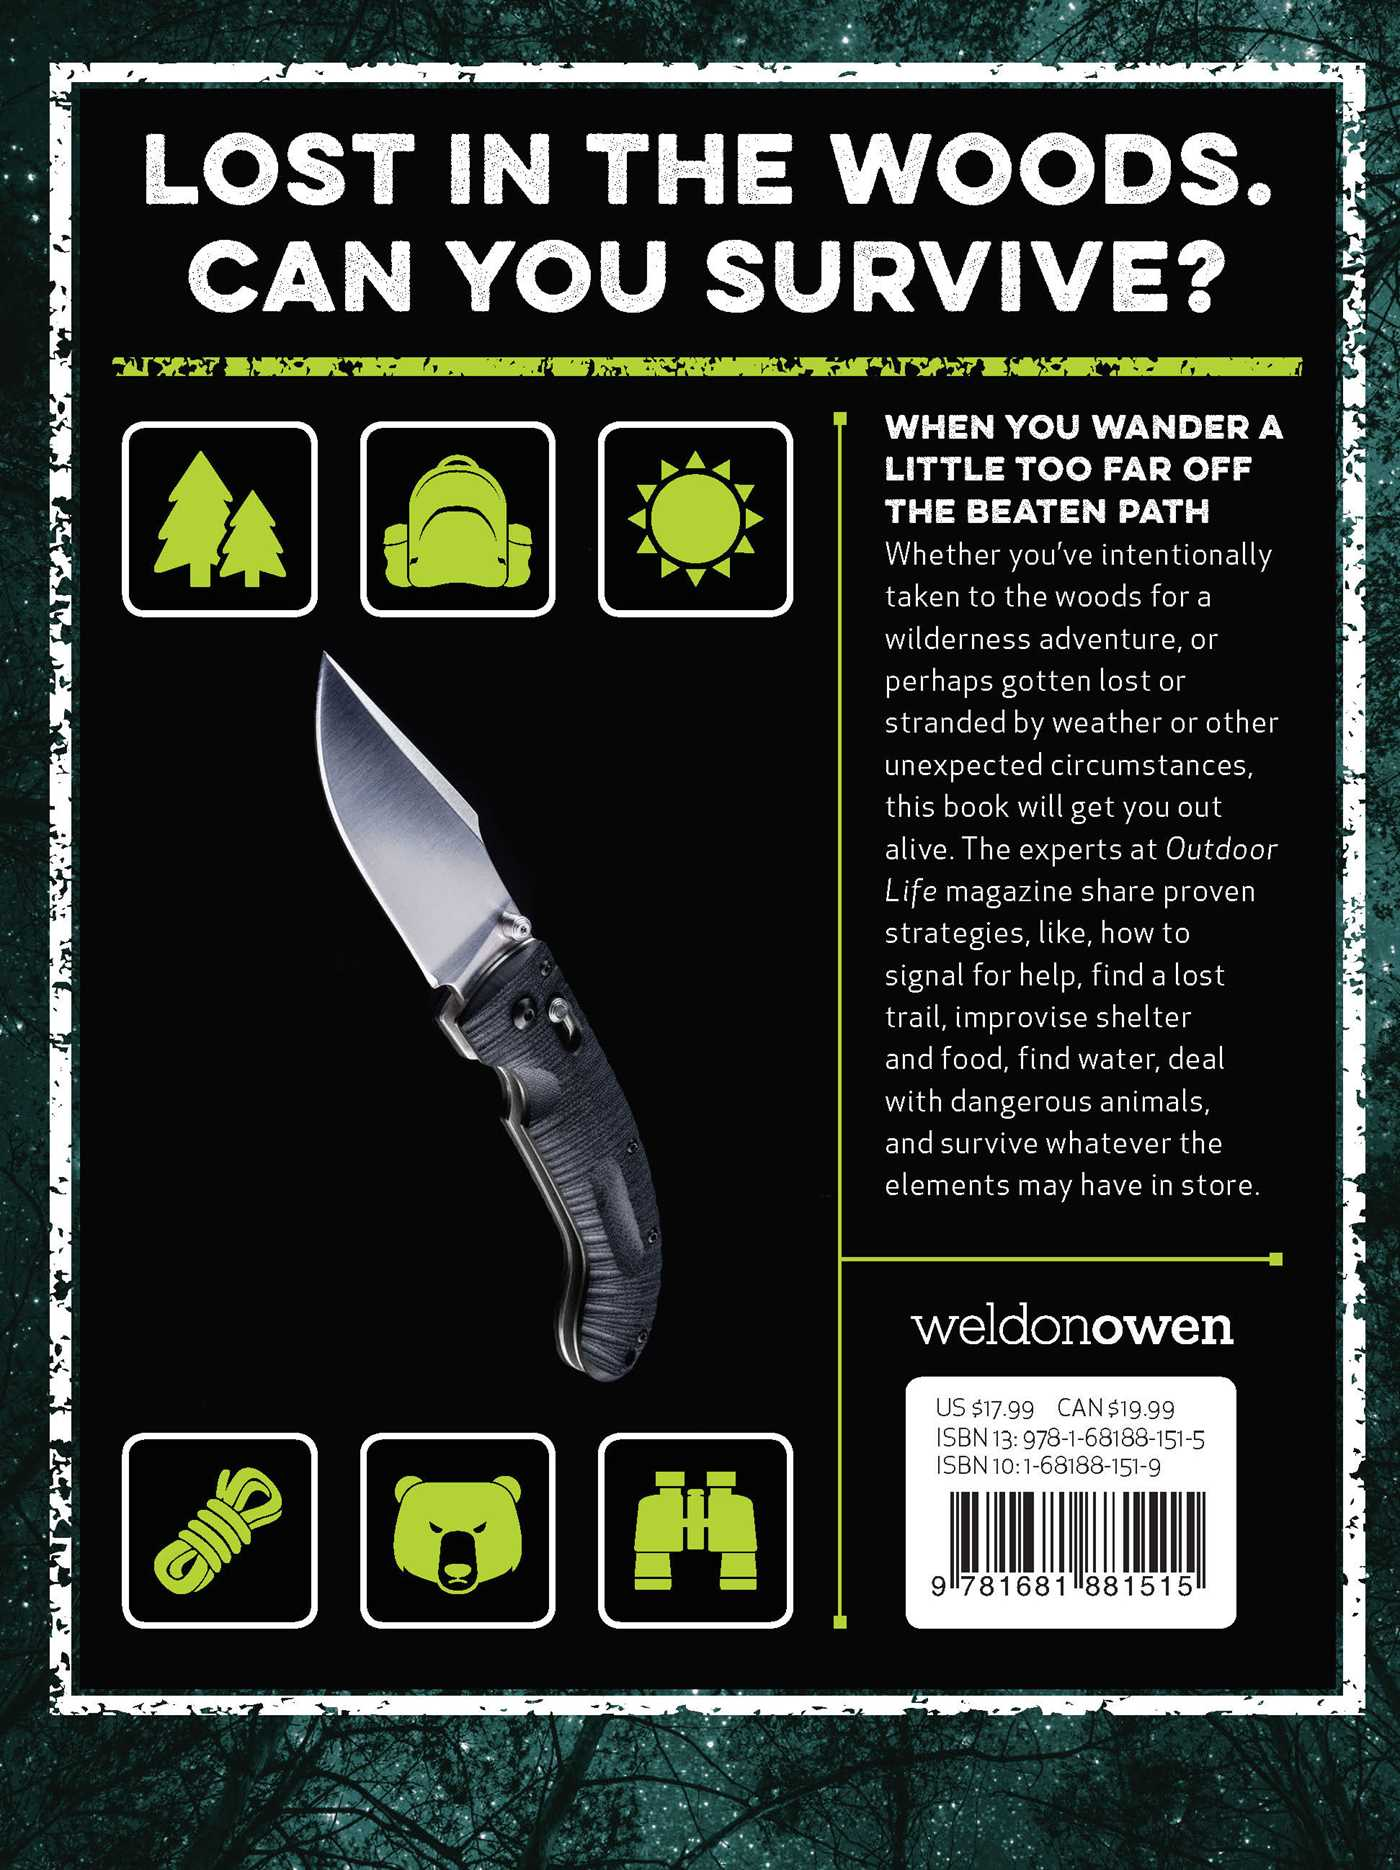 The ultimate wilderness survival handbook 9781681881515 hr back